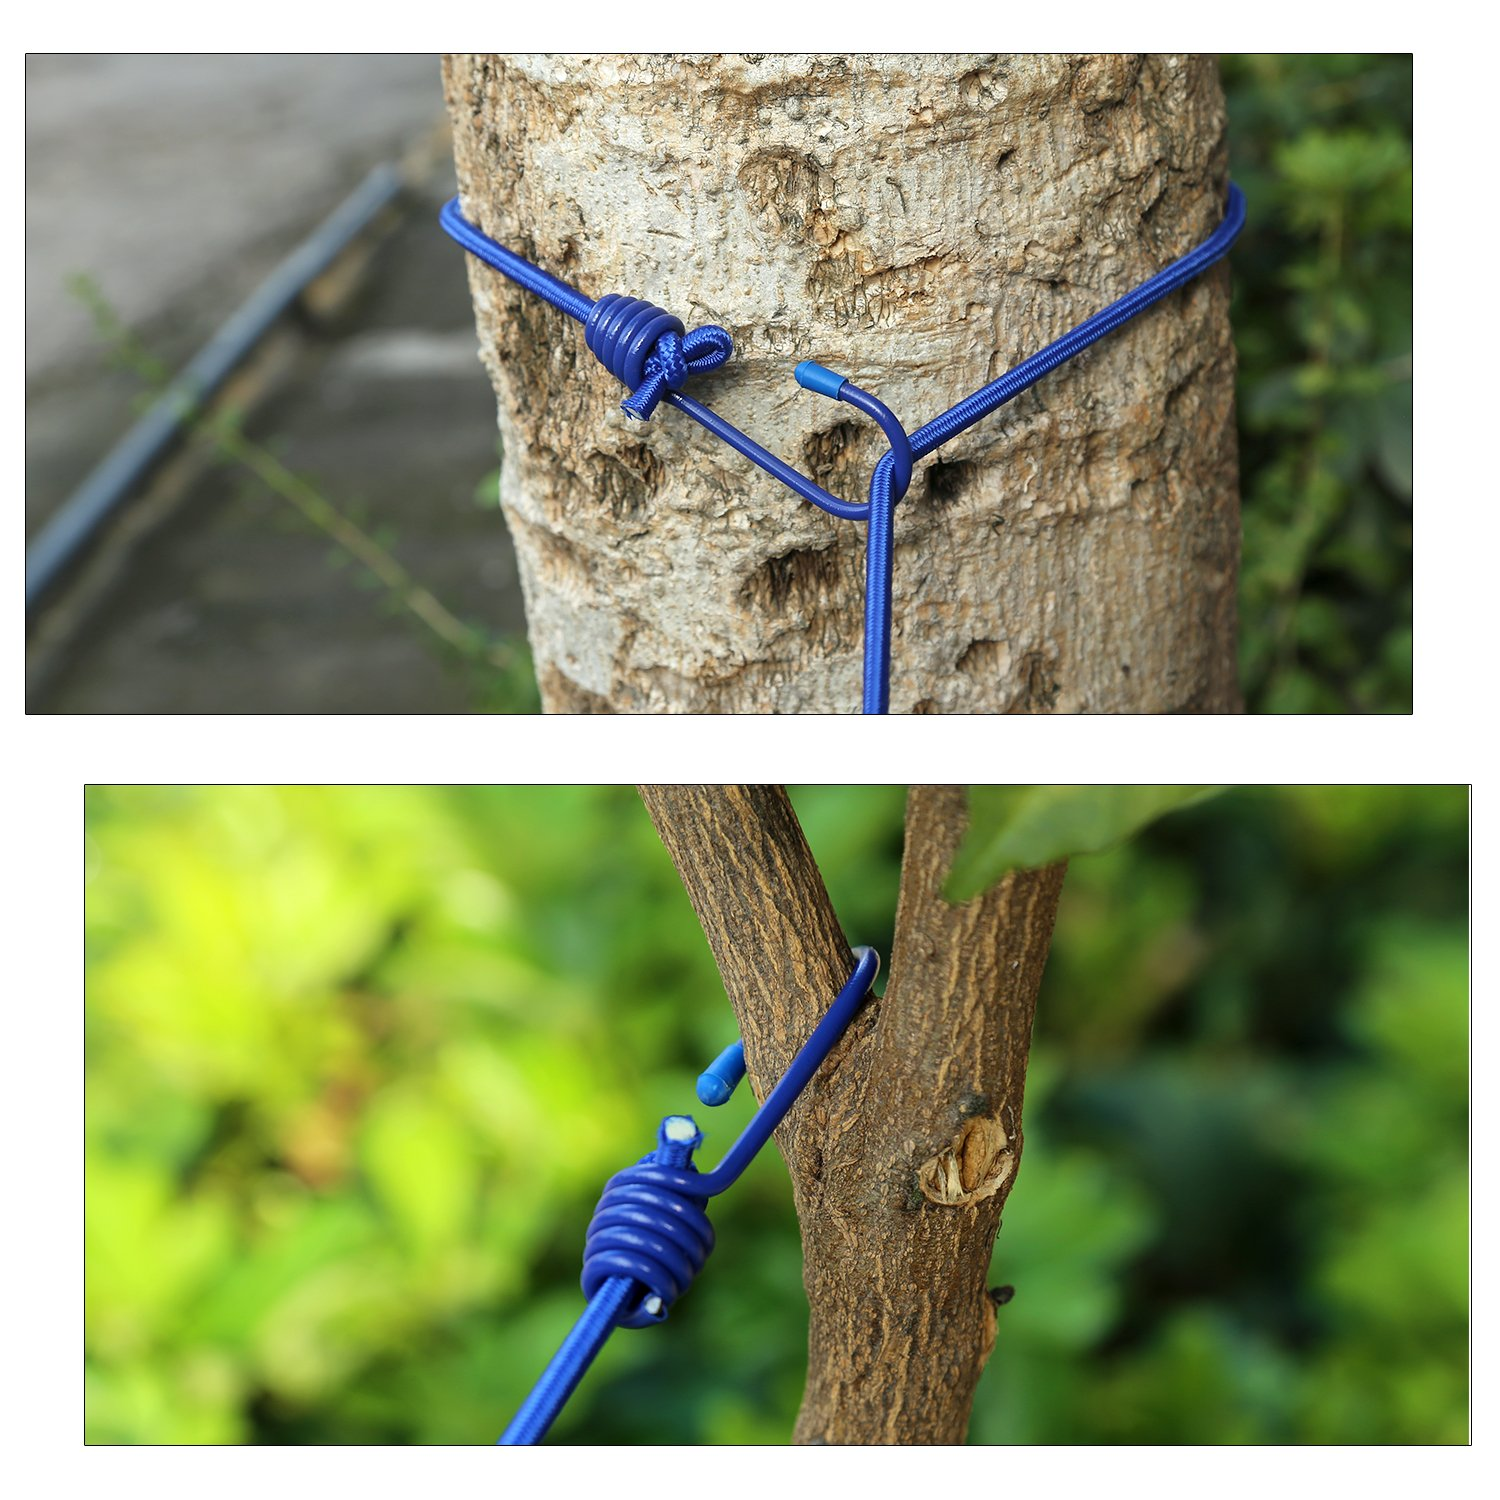 WAAO Portable Travel Clothesline Adjustable Elastic Travel Camping Windproof Clothesline with 12pcs Clips for Outdoor and Indoor Use (dark blue)